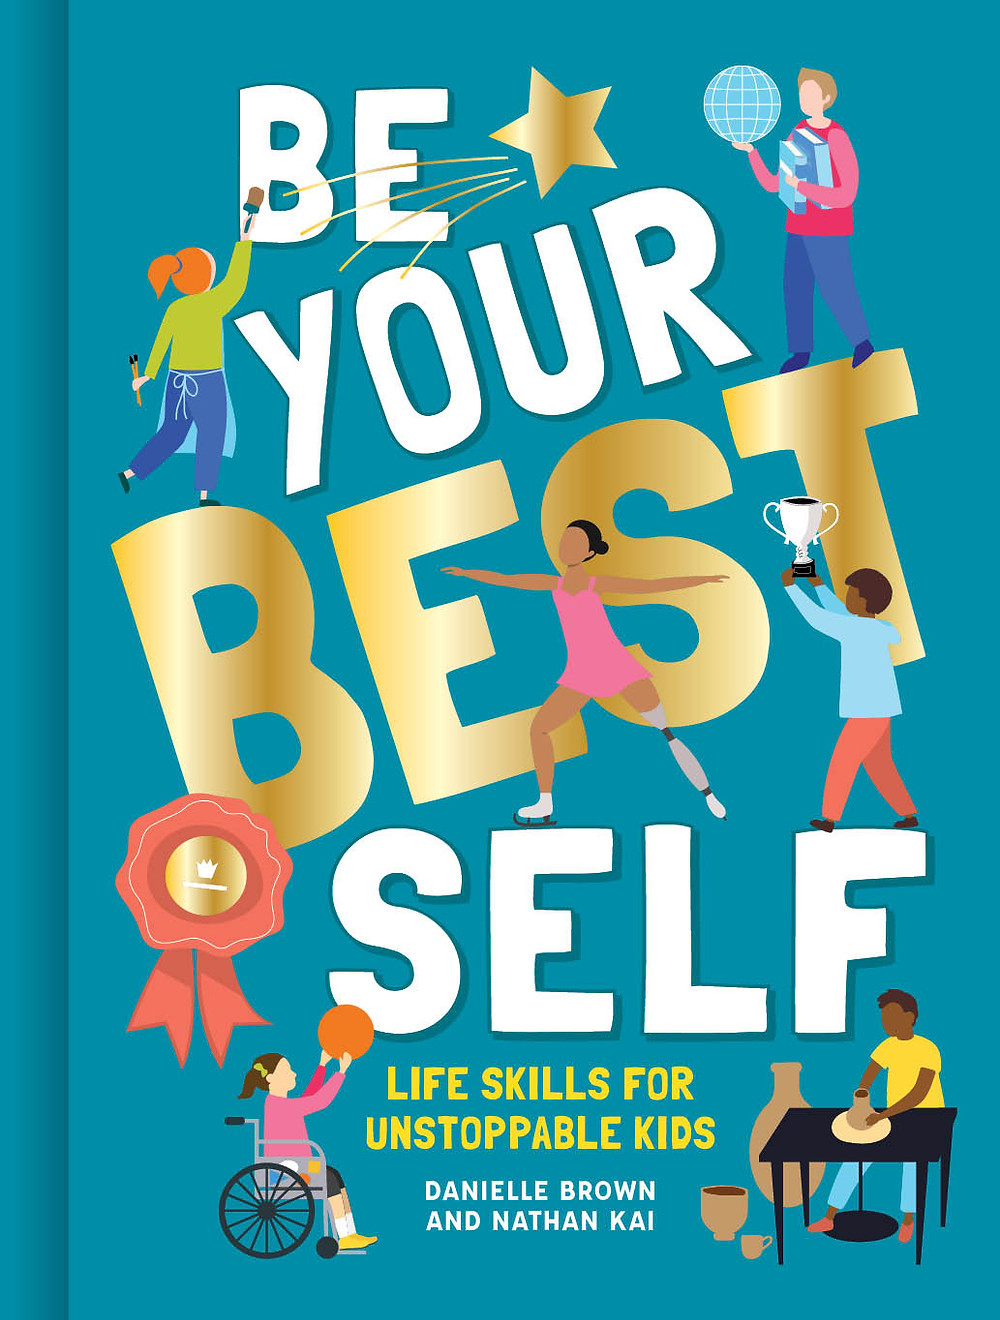 Be Your Best Self, children's book about how to become the best you can be